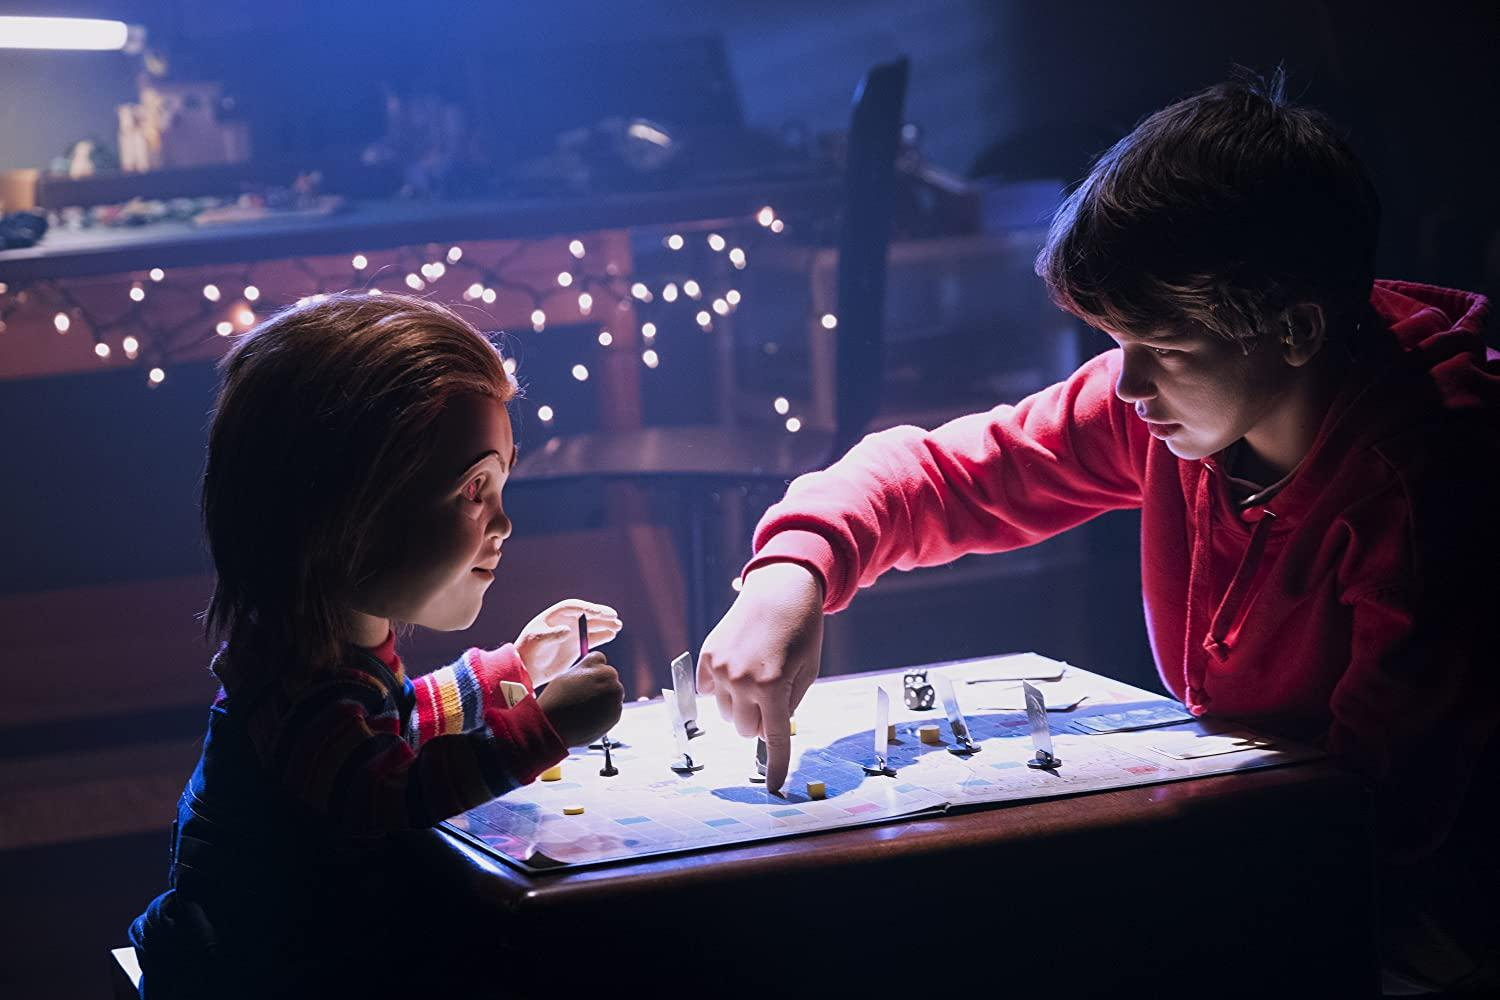 مشاهدة فيلم Childs Play (2019) مترجم HD اون لاين